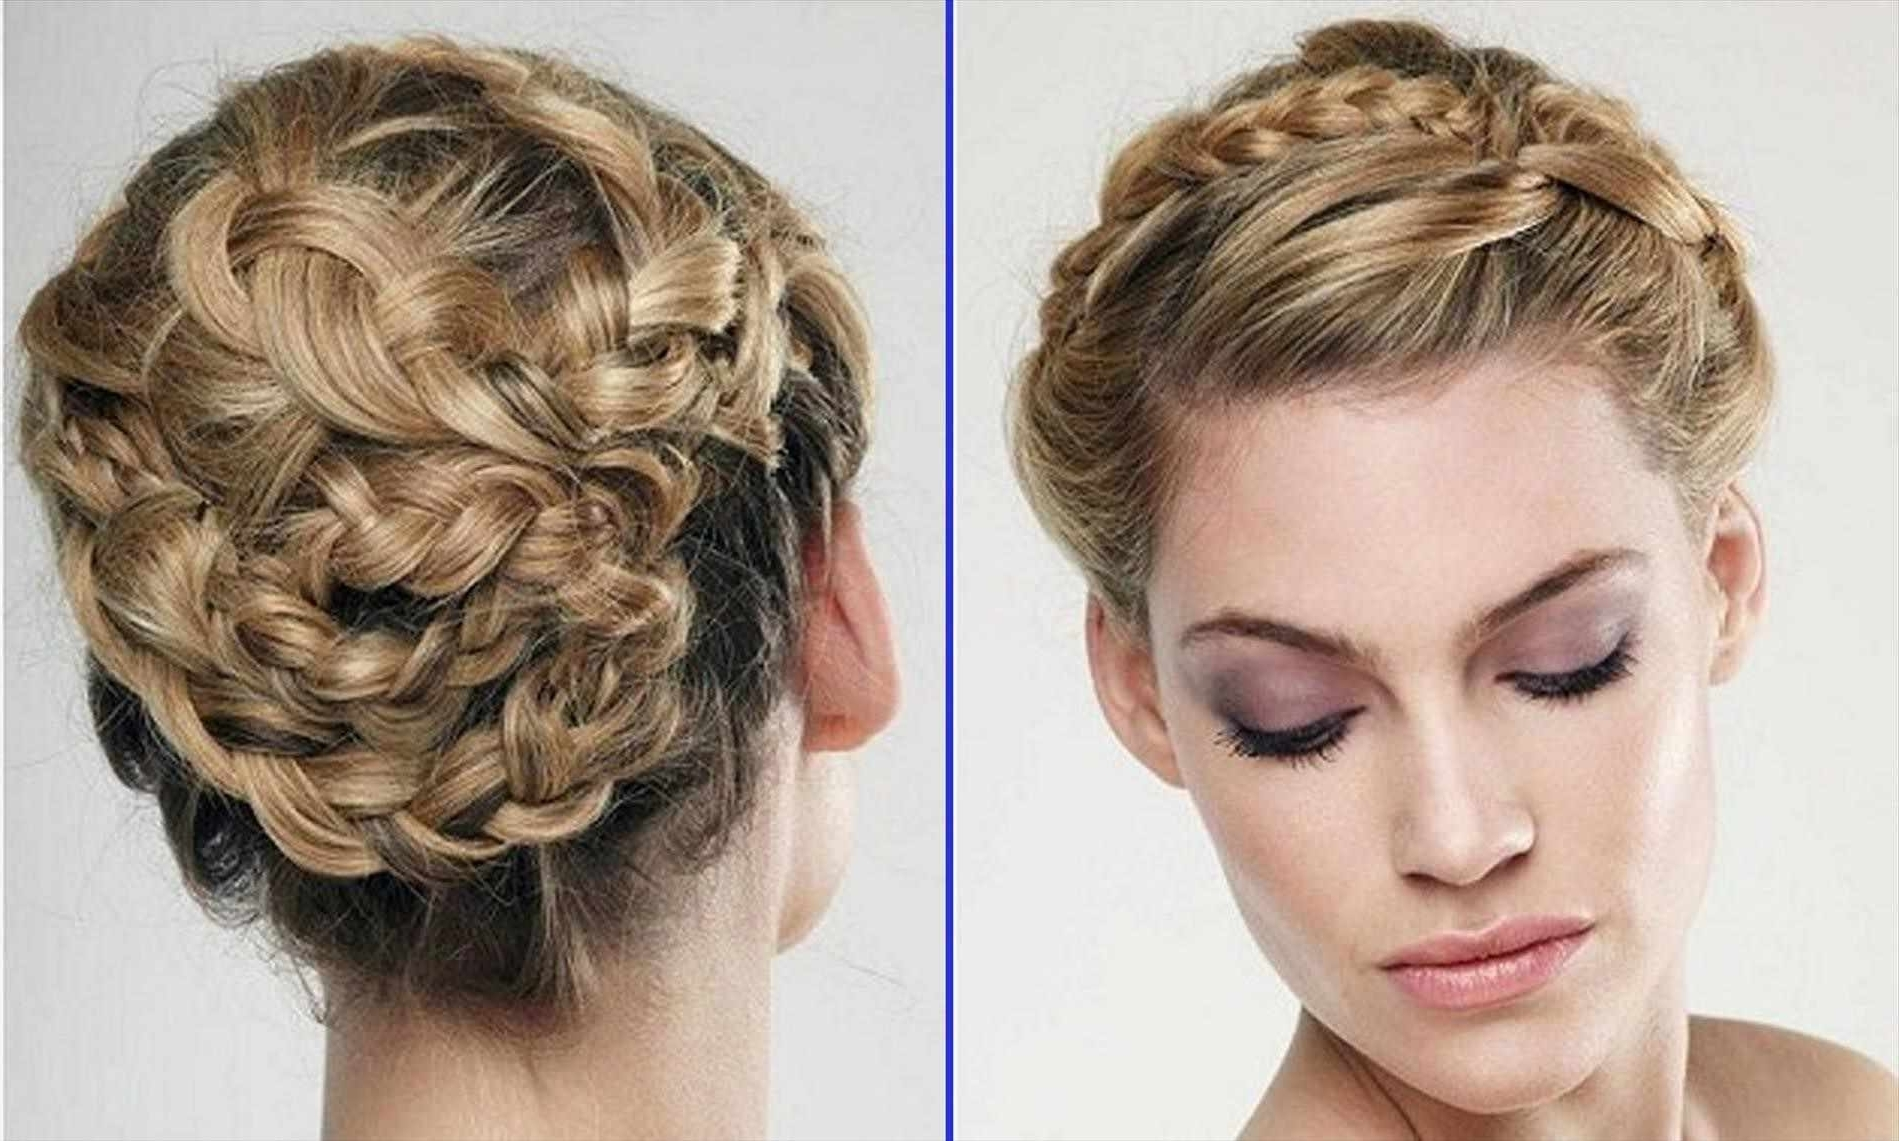 Braided Updo Youtube Braided Short Hair Updos With Braids Updo For For Wedding Hairstyles For Short Hair Updos (View 5 of 15)